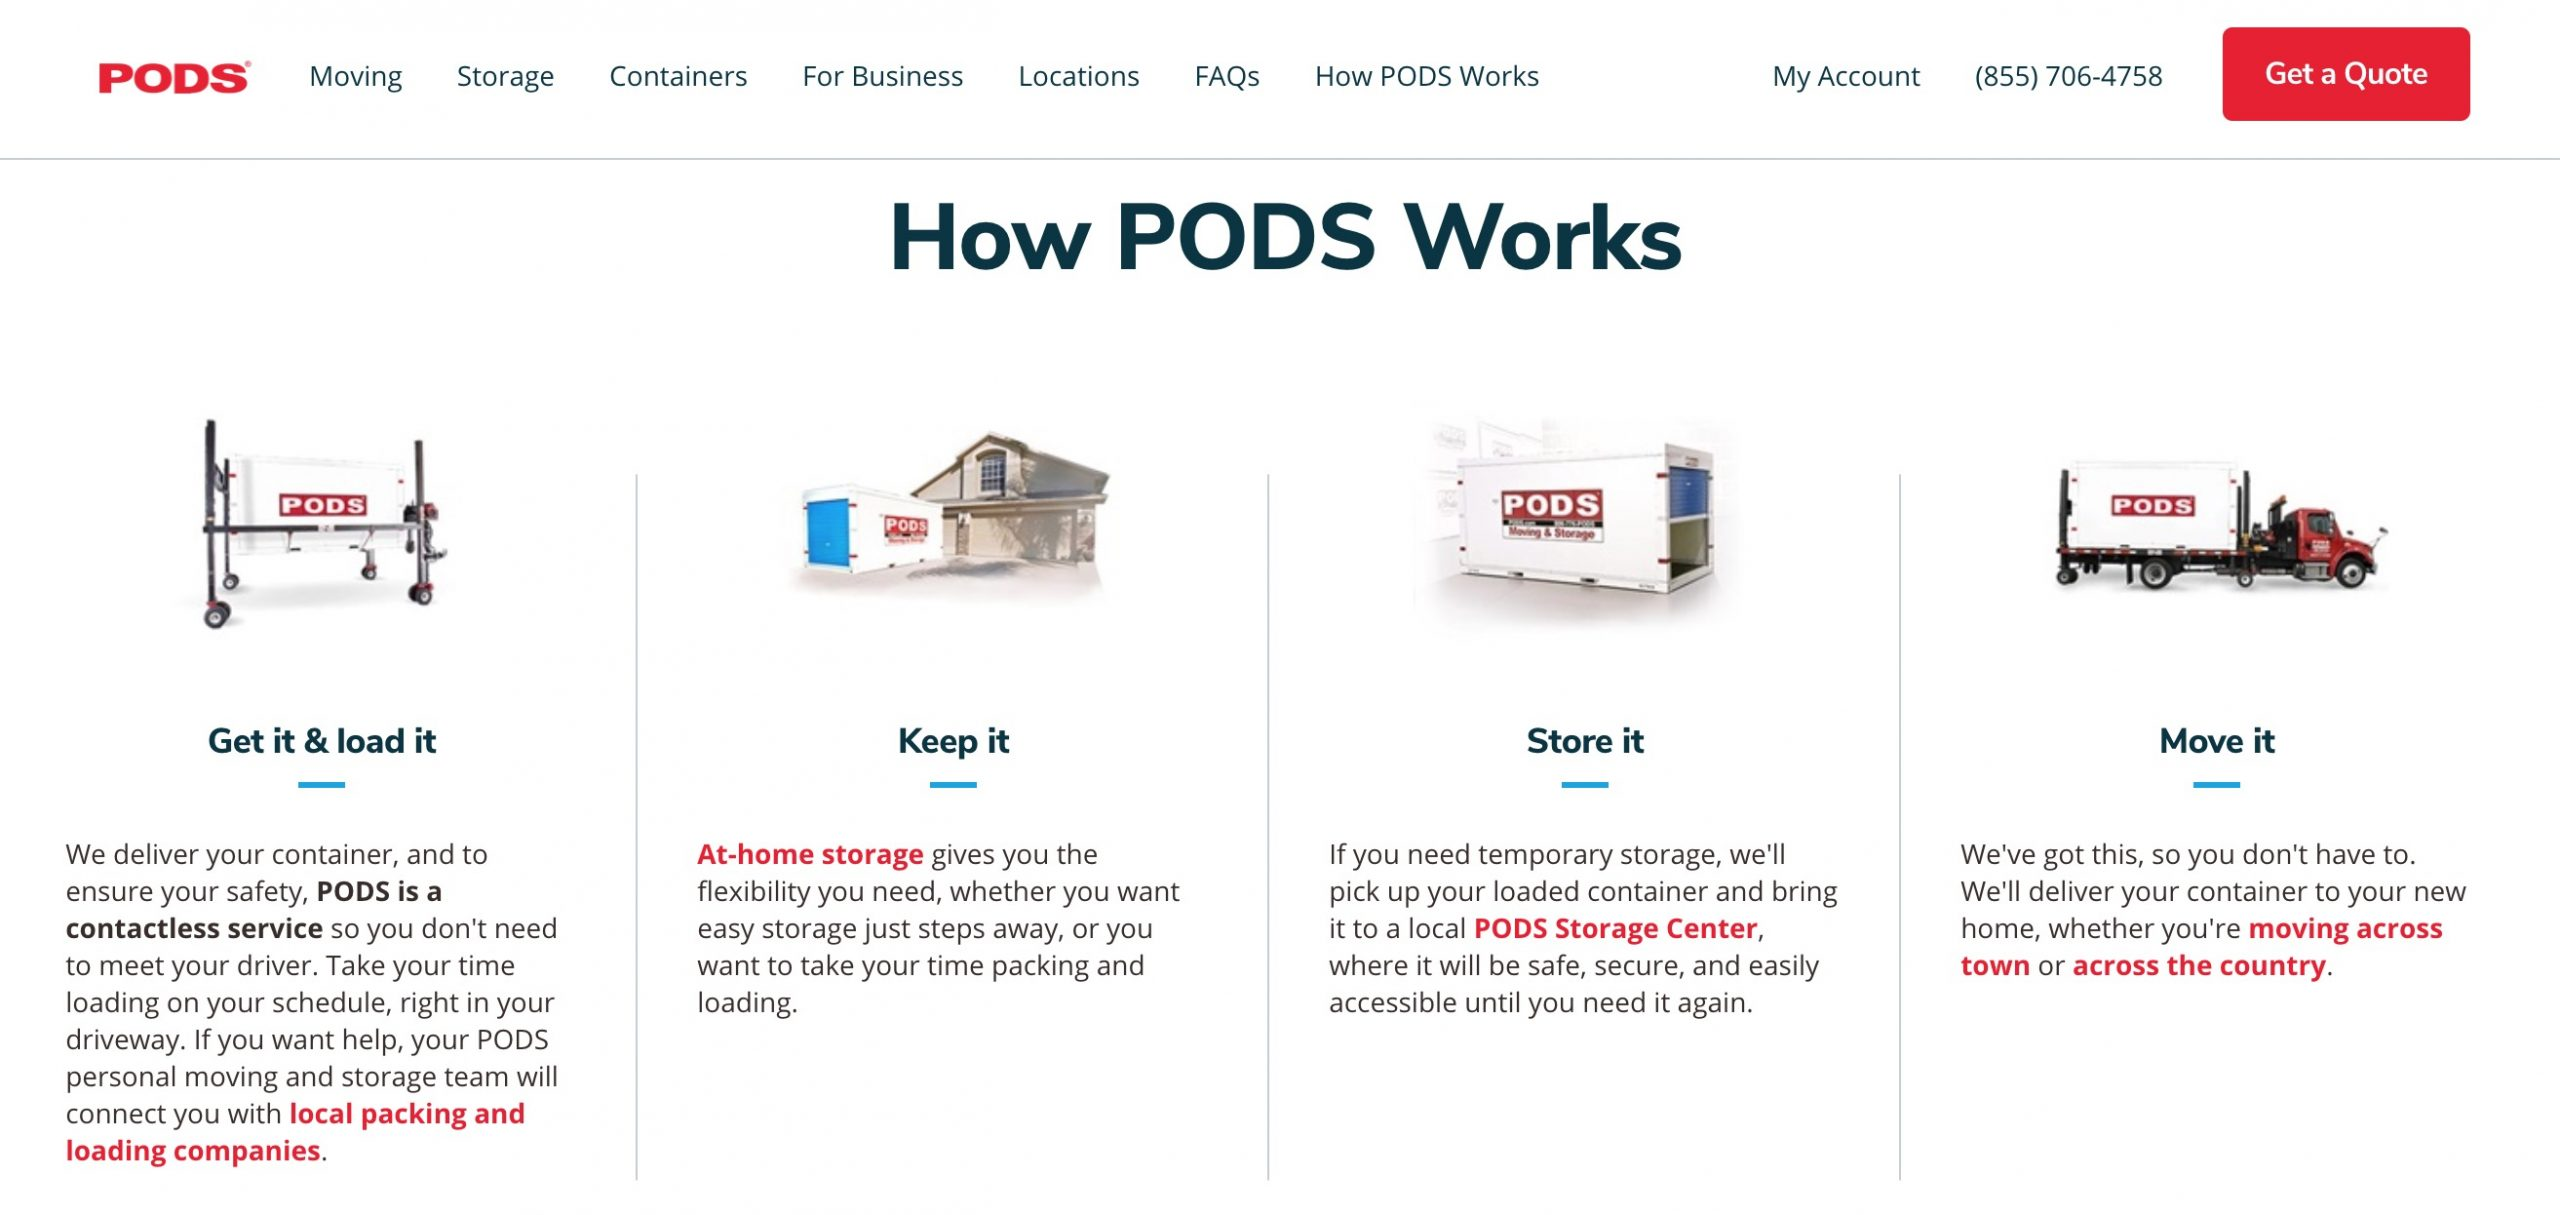 pods moving how works